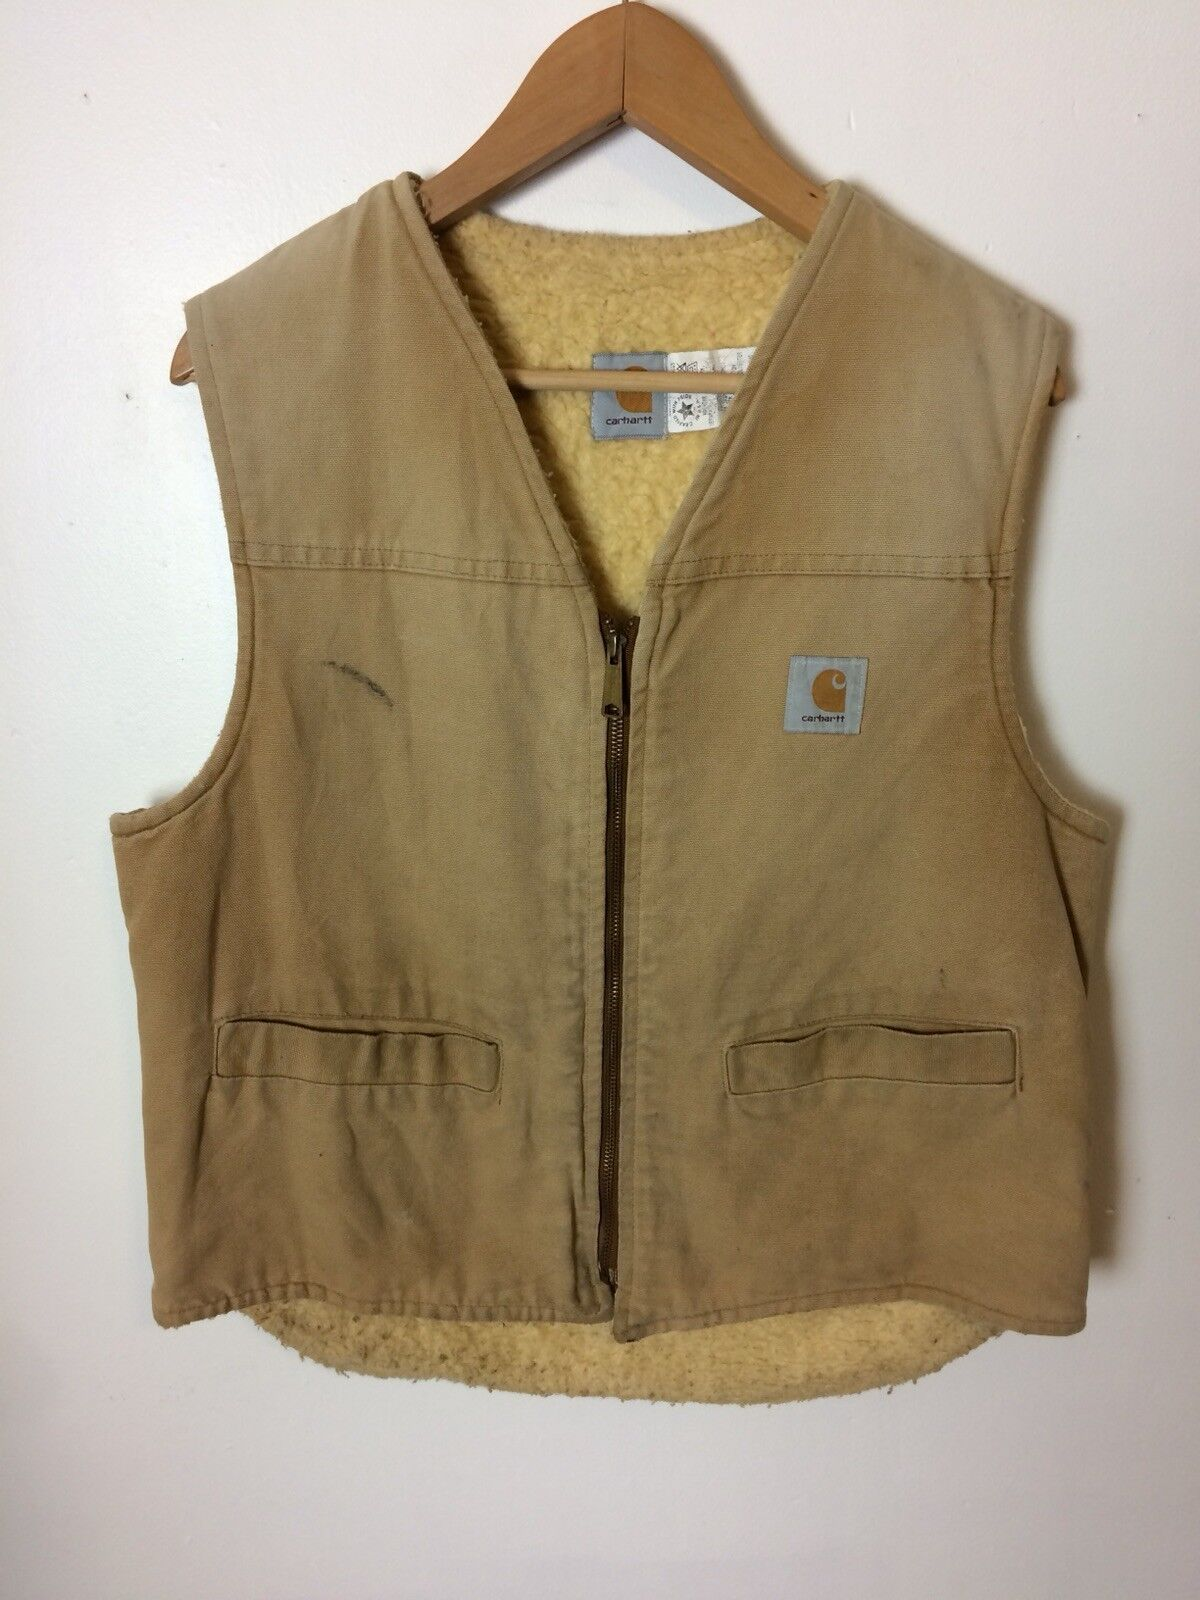 f904845061 Vintage CARHARTT Sherpa Lined Vest Size Large Faded Brown Union Made In  USA. N2N Men's FS2 Yellow Fusion Trunk Bikini - Nylon Spandex - Unlined ...